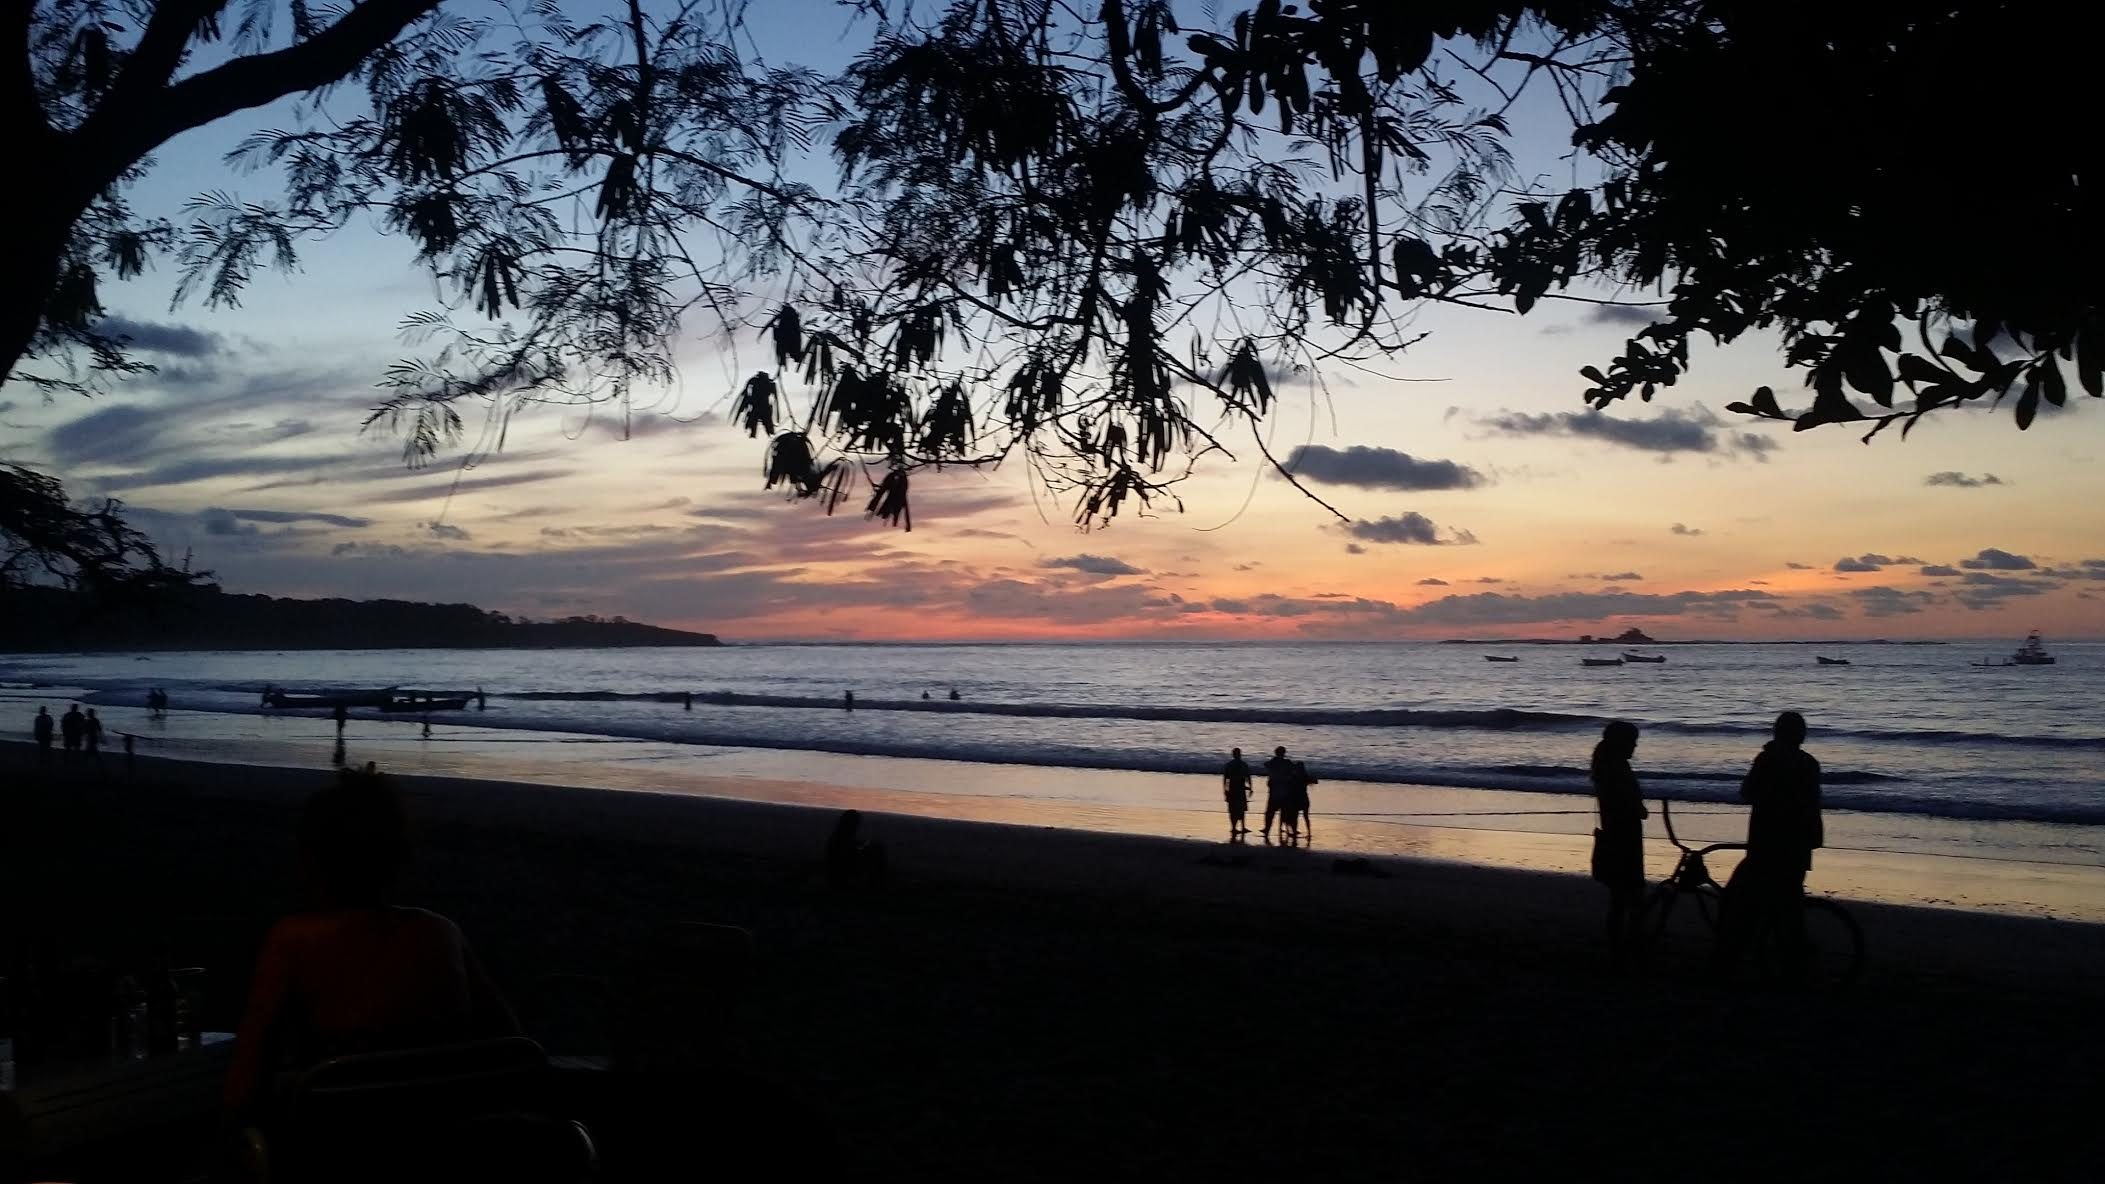 A Beautiful Sunset in Tamarindo! Photo Credit: Meagan Sargent